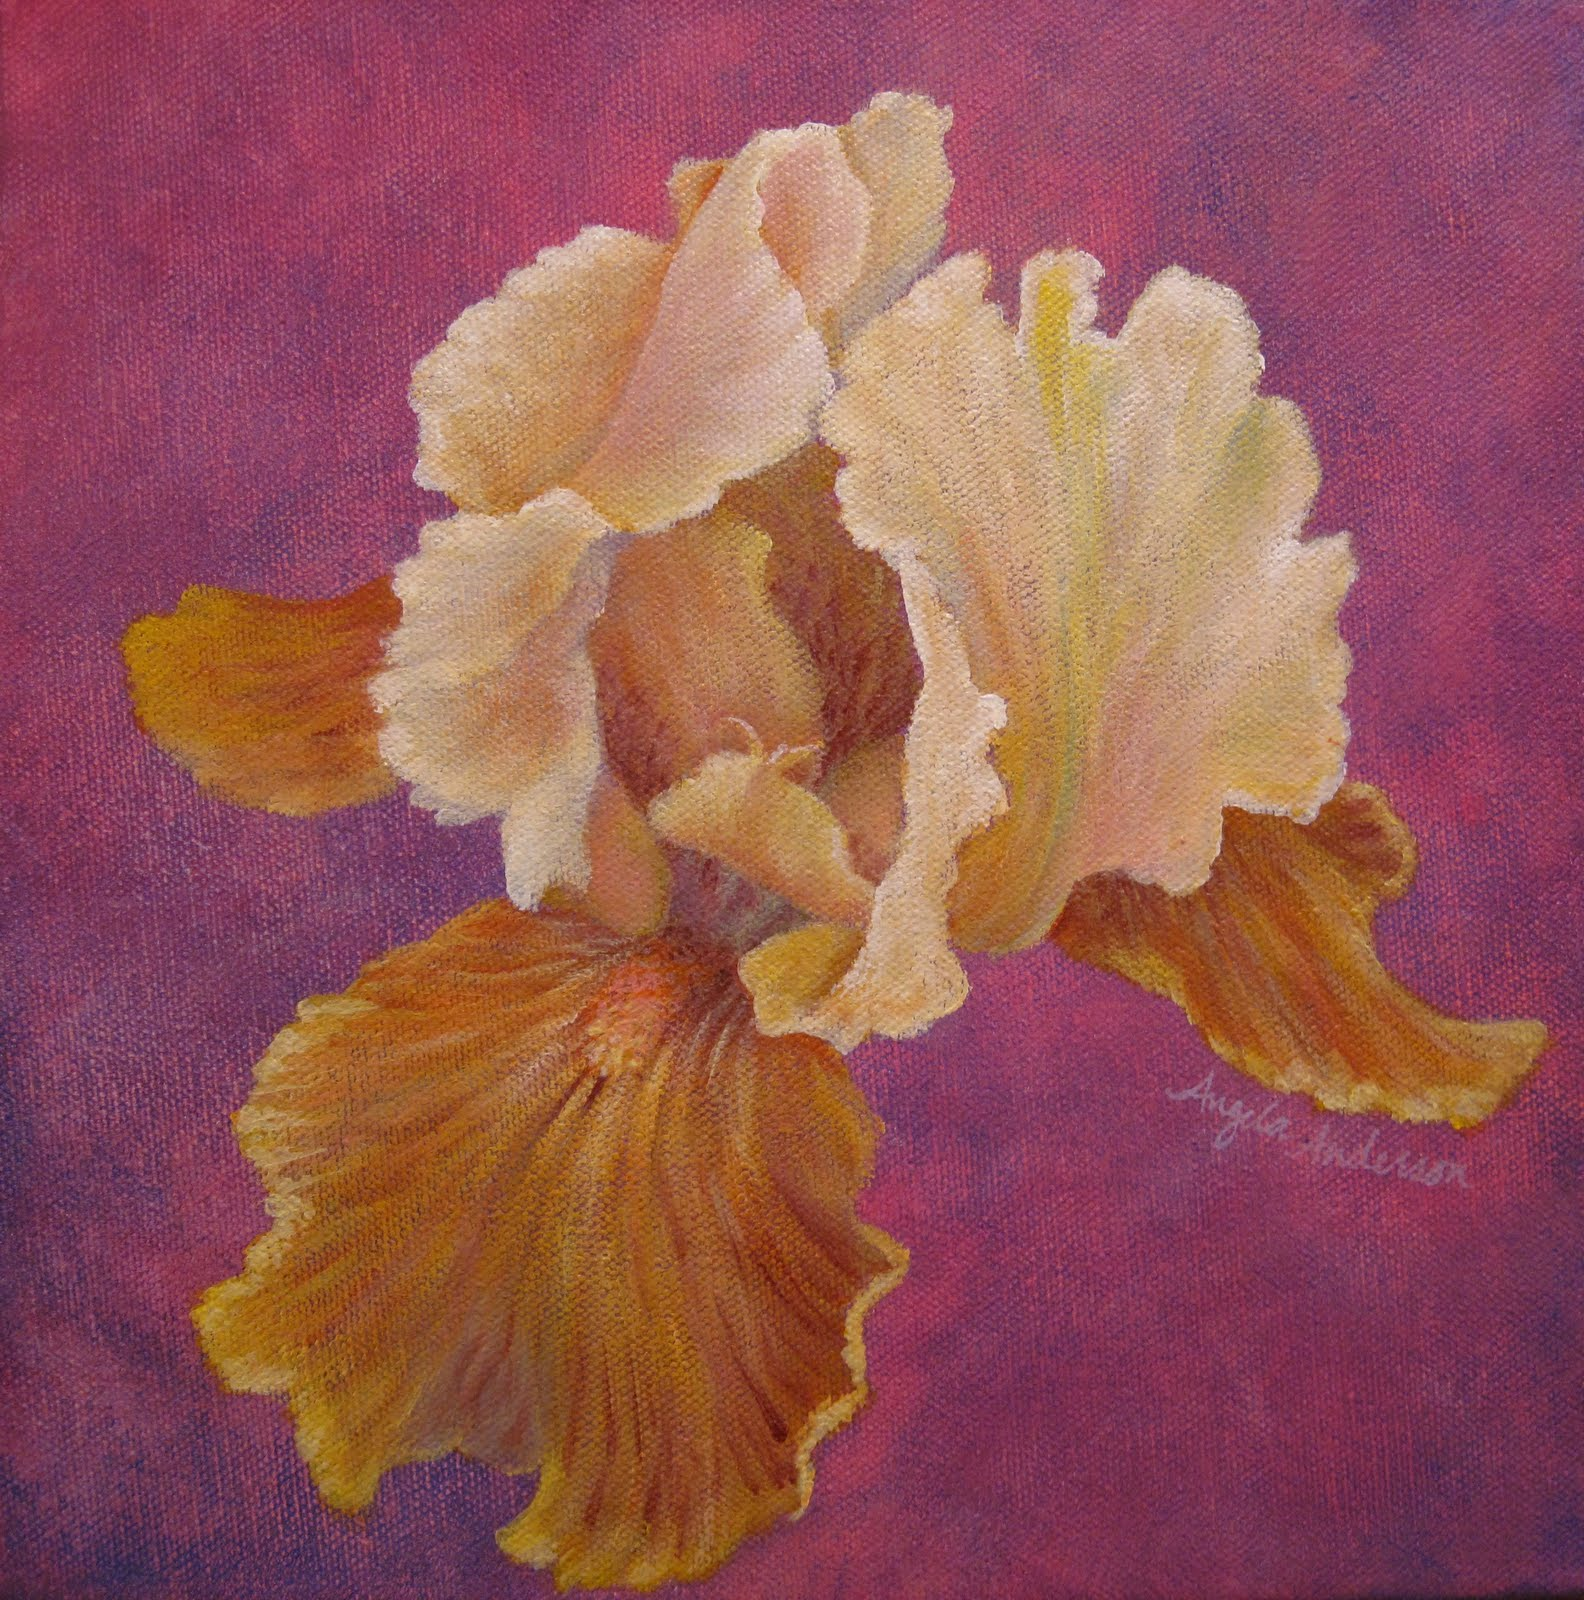 Angela anderson art blog new iris paintings the yellow iris got the most new work done i added a lot more detail to the upper petals portion i think im really finished this time izmirmasajfo